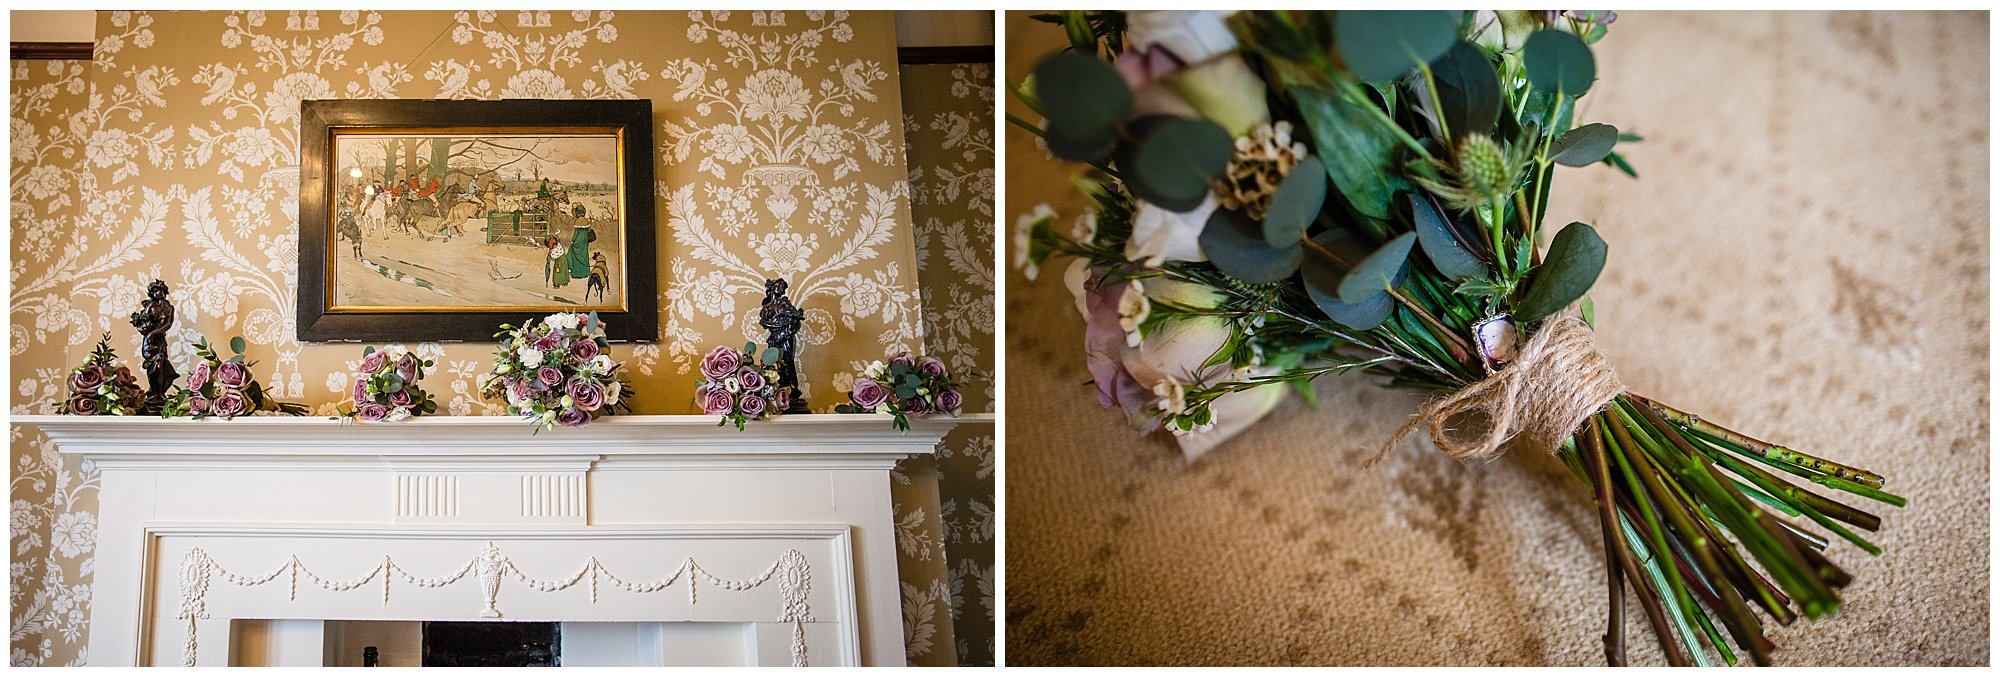 floral details at soulton hall spring wedding